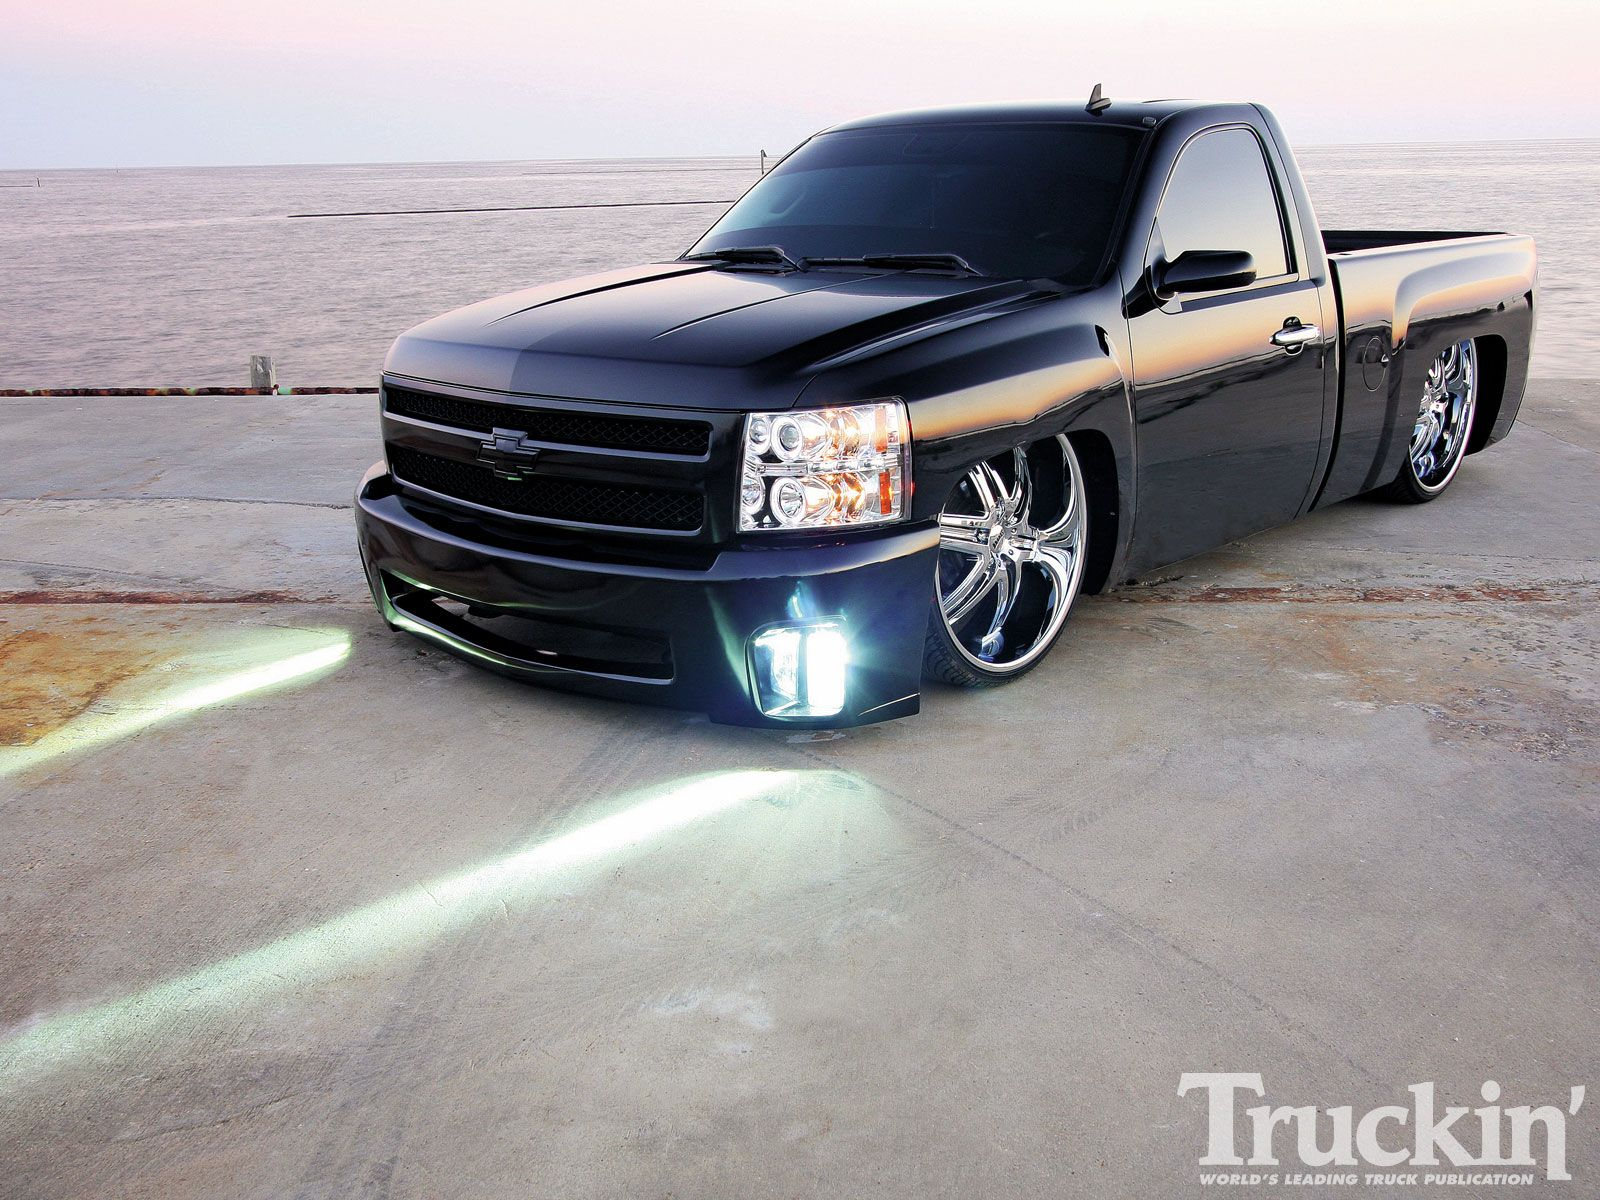 2008 chevy silverado slammed with a bag suspension i would do this to my truck